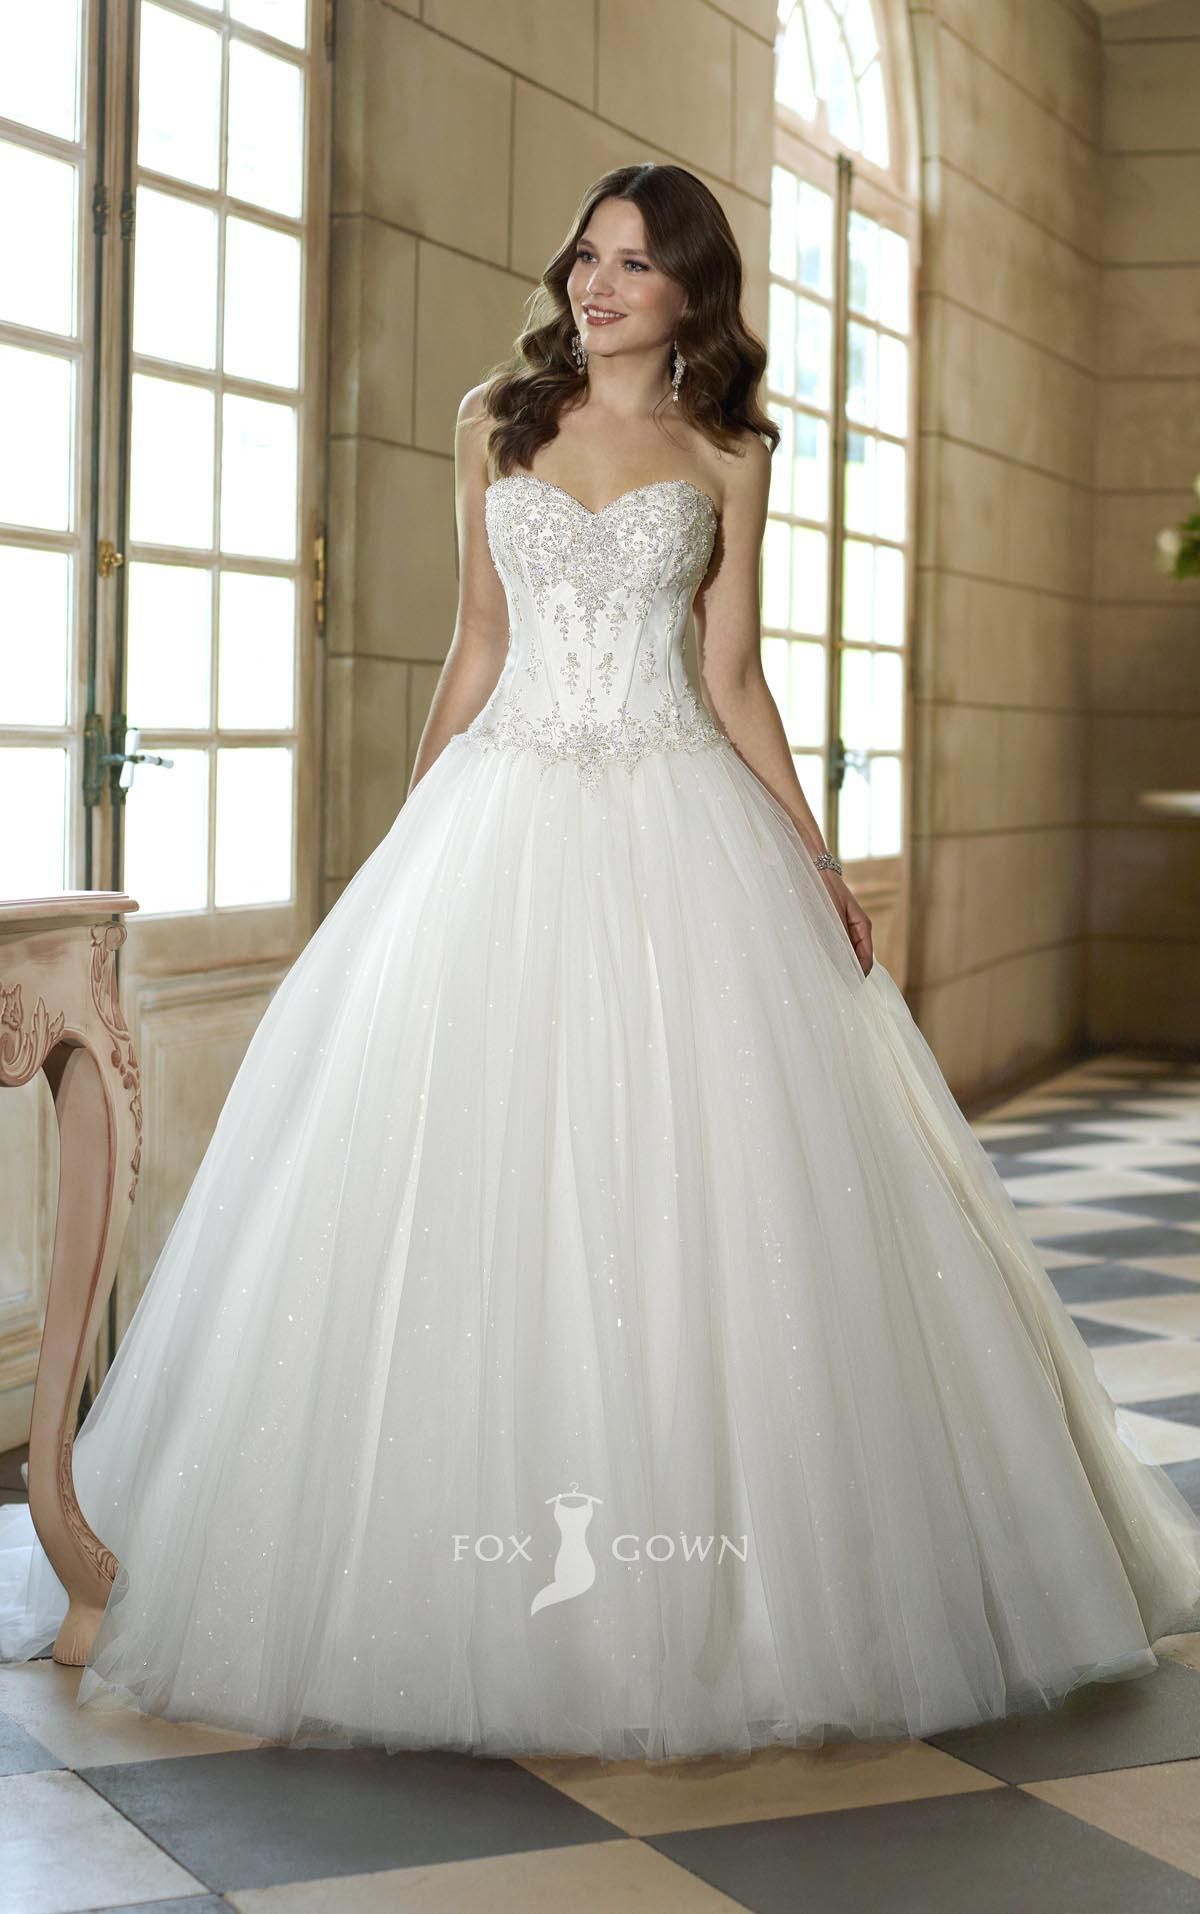 Love This Dress Both Simple And Elegant €�: Elegant Strapless Wedding Dresses Puffy At Websimilar.org